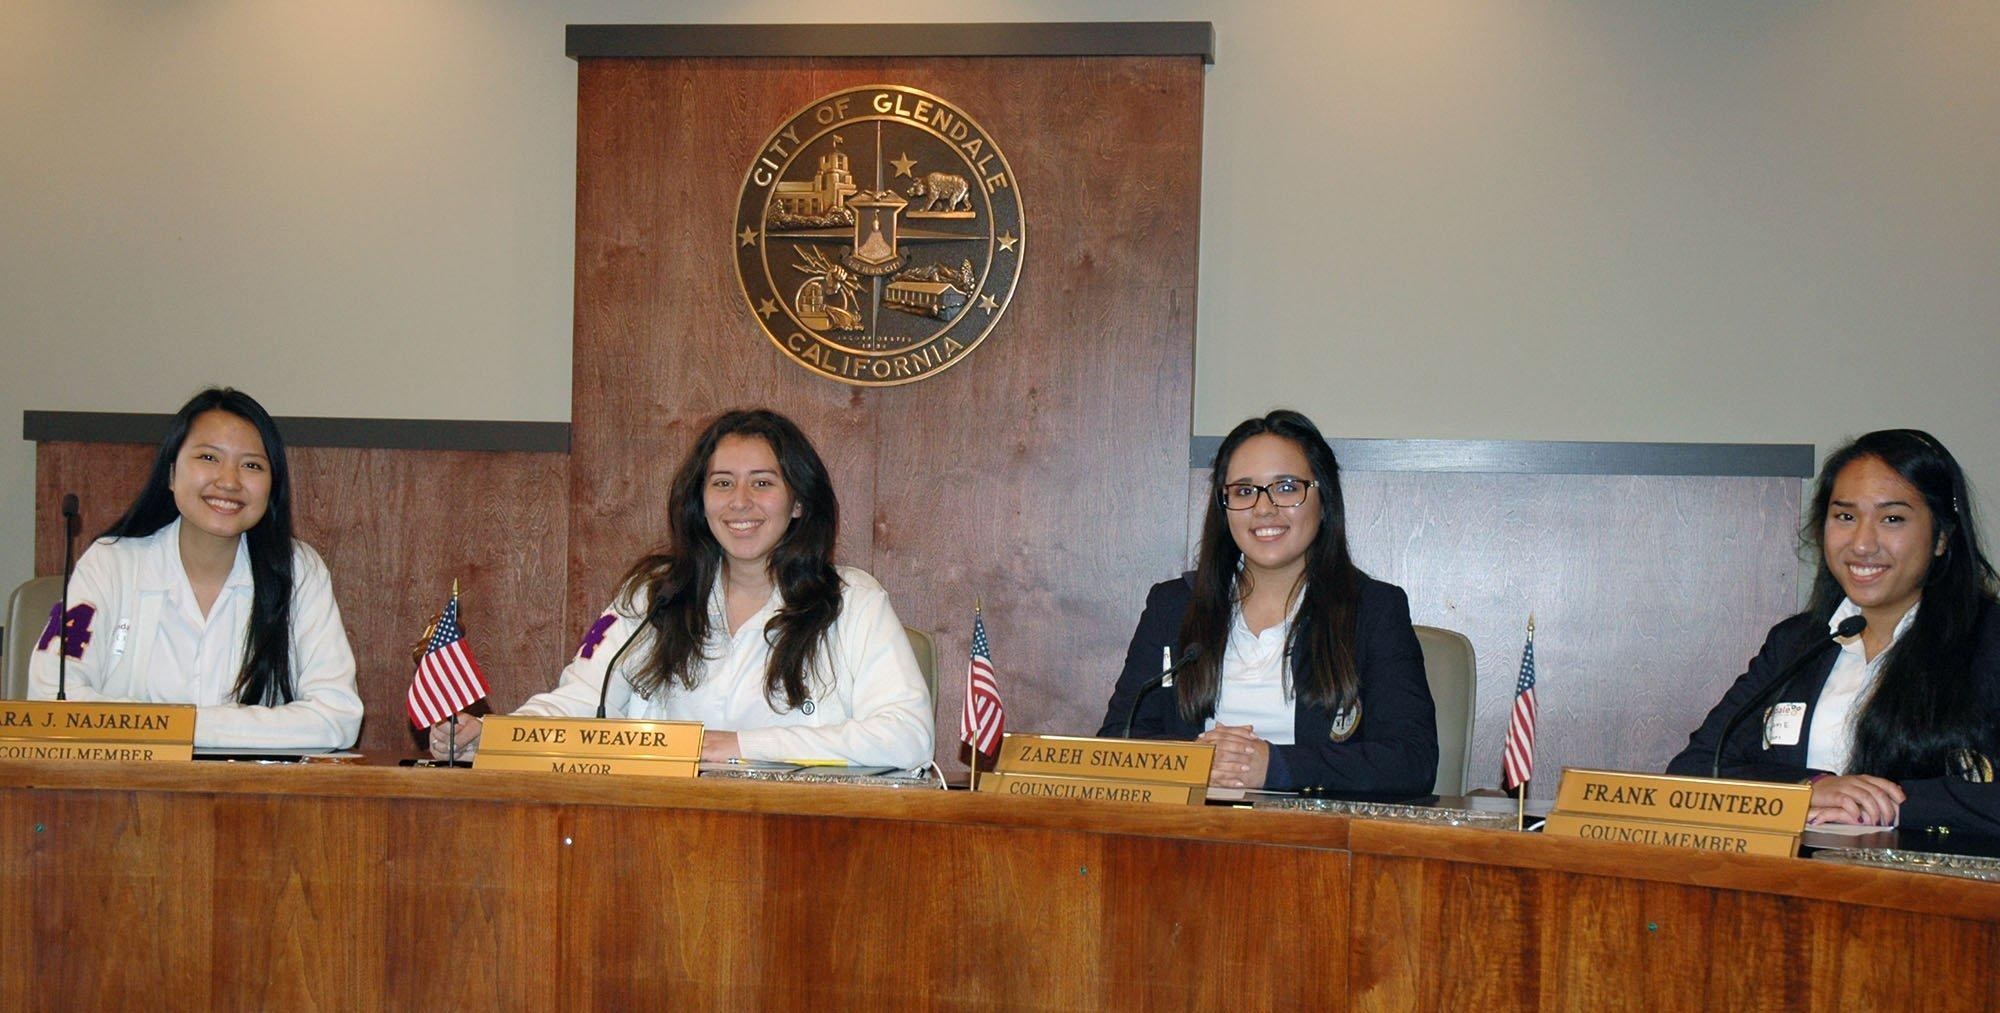 Holy Family High School students try out the City Council members' seats during a recent job shadow day at Glendale City Hall. They are, from left, Alexa Faraon, ASB President Julyanna Mendez, Fabiola Flores and Maryam Eapen. (Photo by Joyce Rudolph)